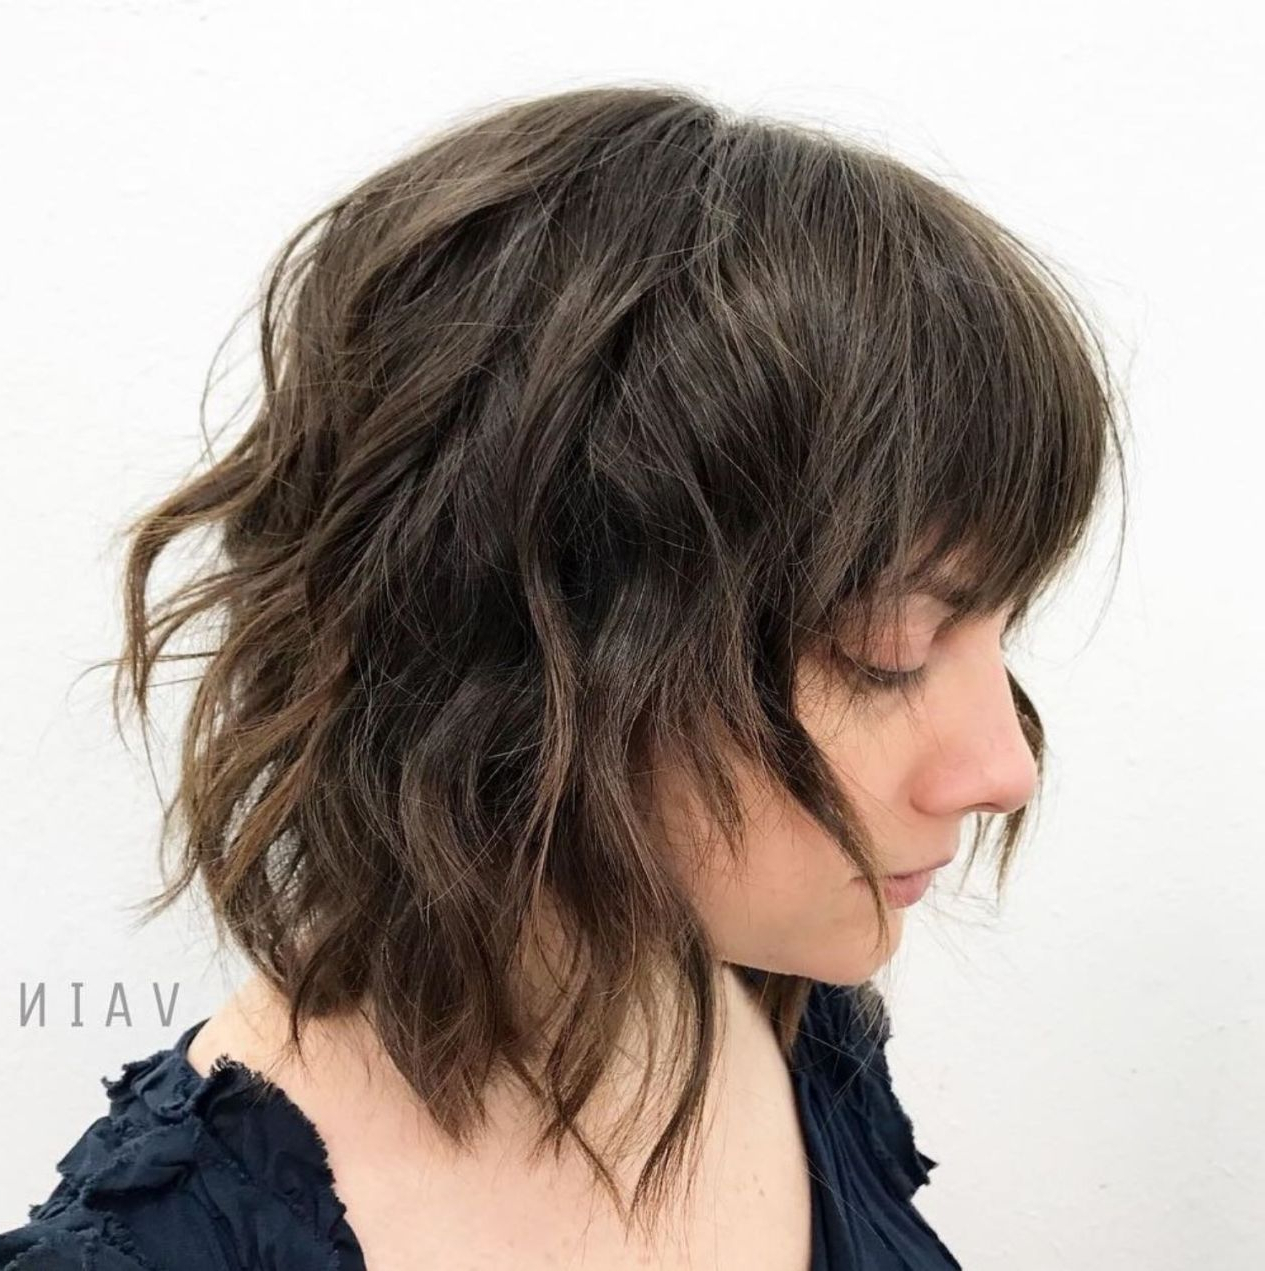 60 Most Universal Modern Shag Haircut Solutions In 2019 Inside Newest Shorter Shag Haircuts With Razored Layers (View 9 of 20)